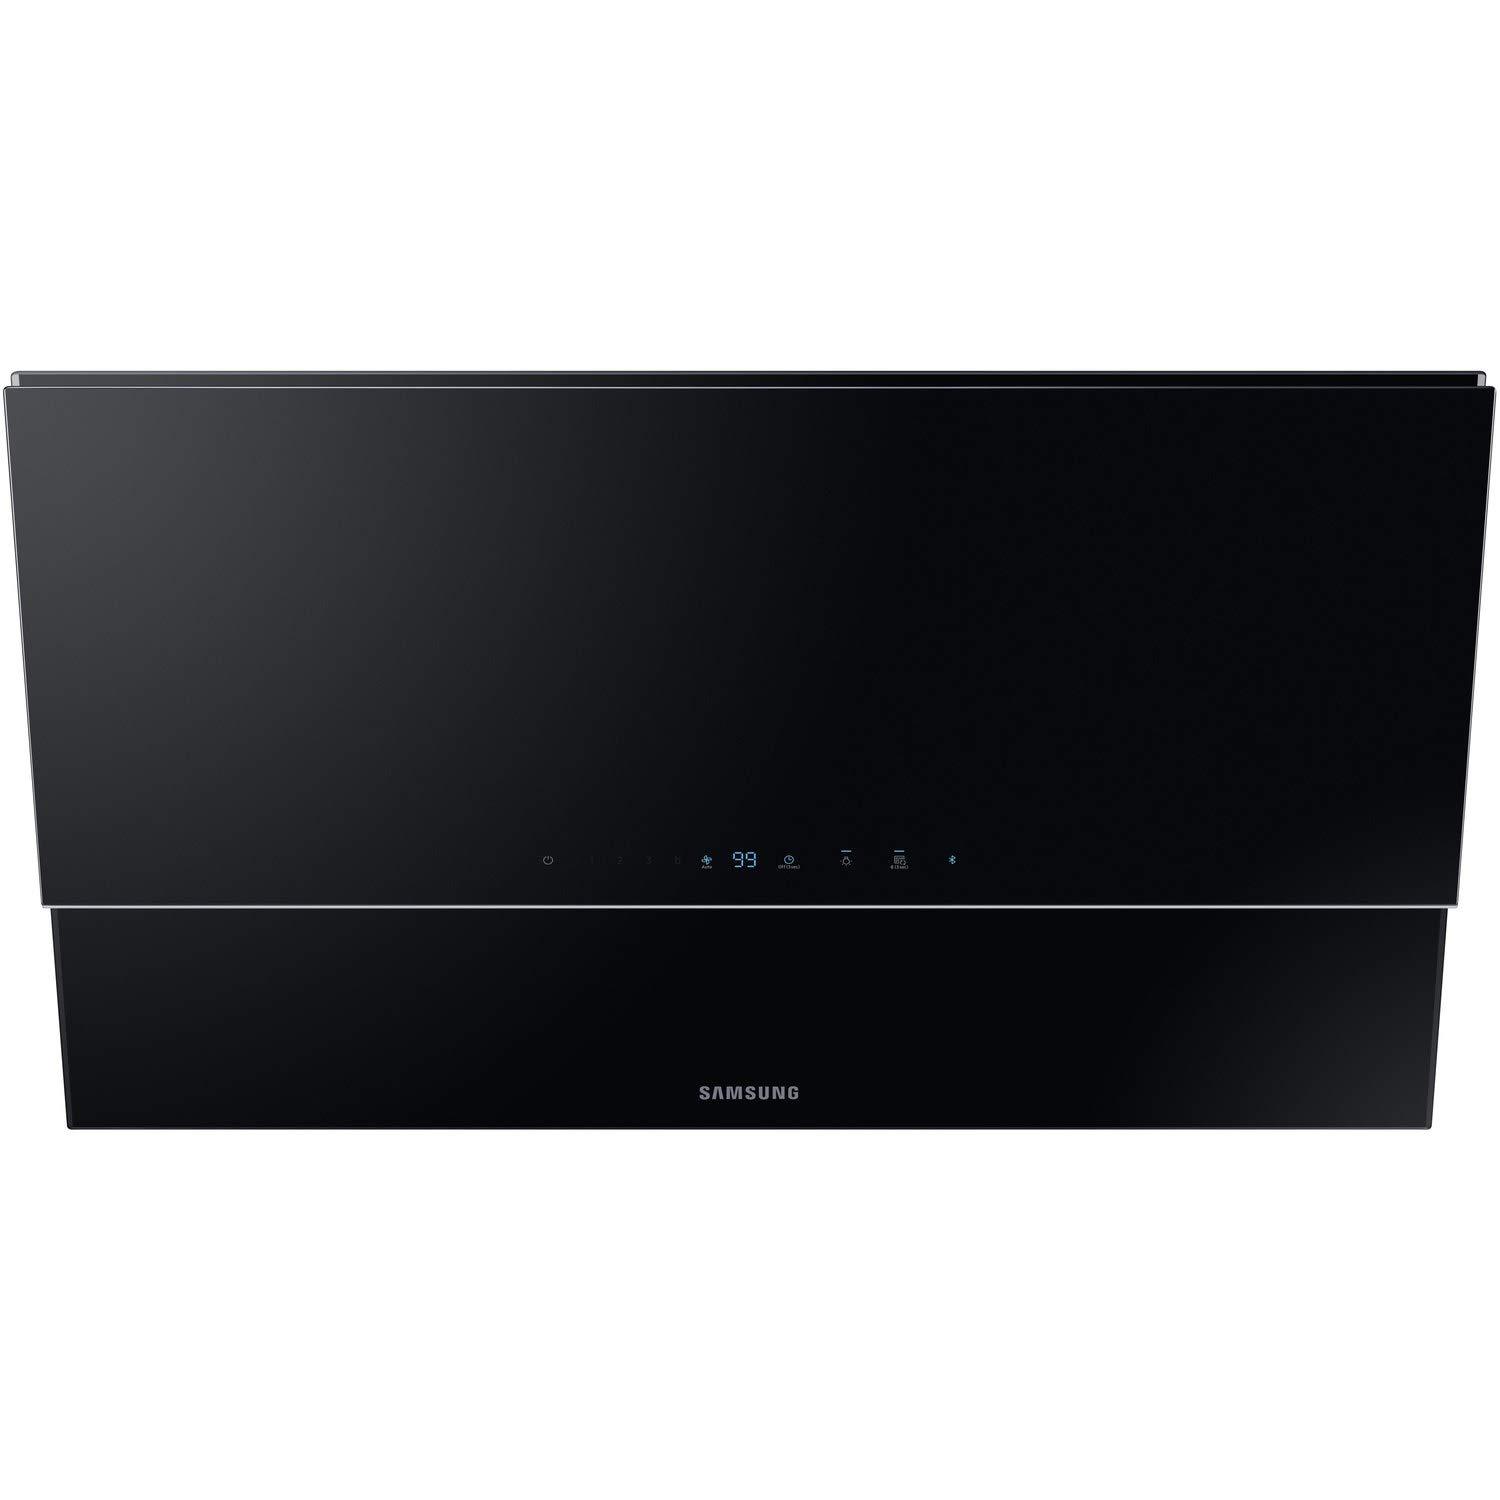 Samsung Campana Decorativa NK36N9804VB_UR Negro: Amazon.es ...